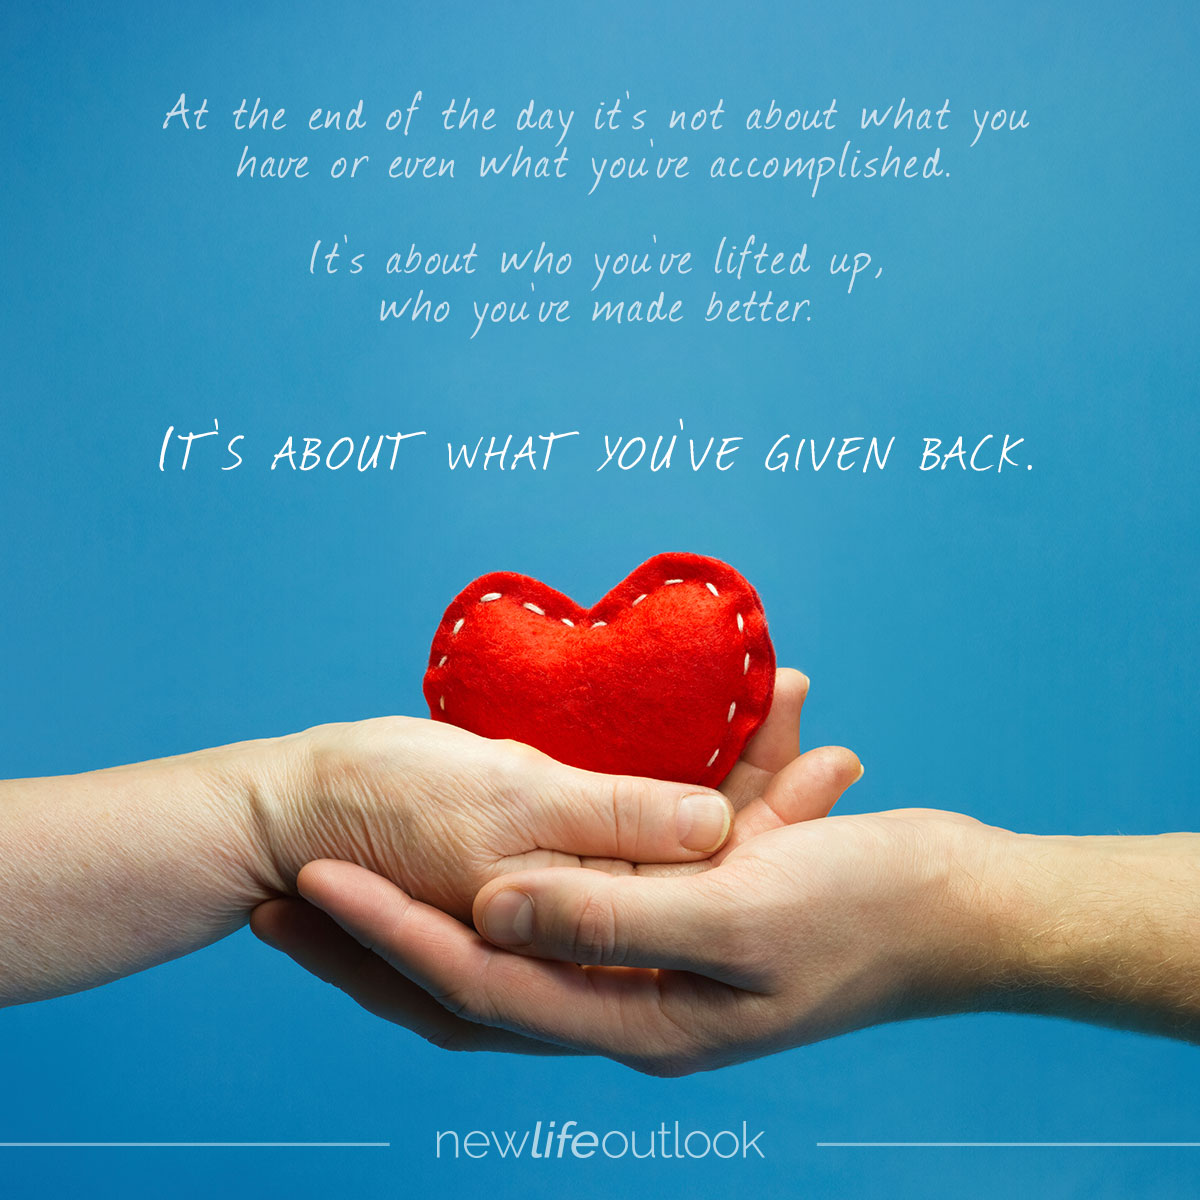 It's about what you've given back